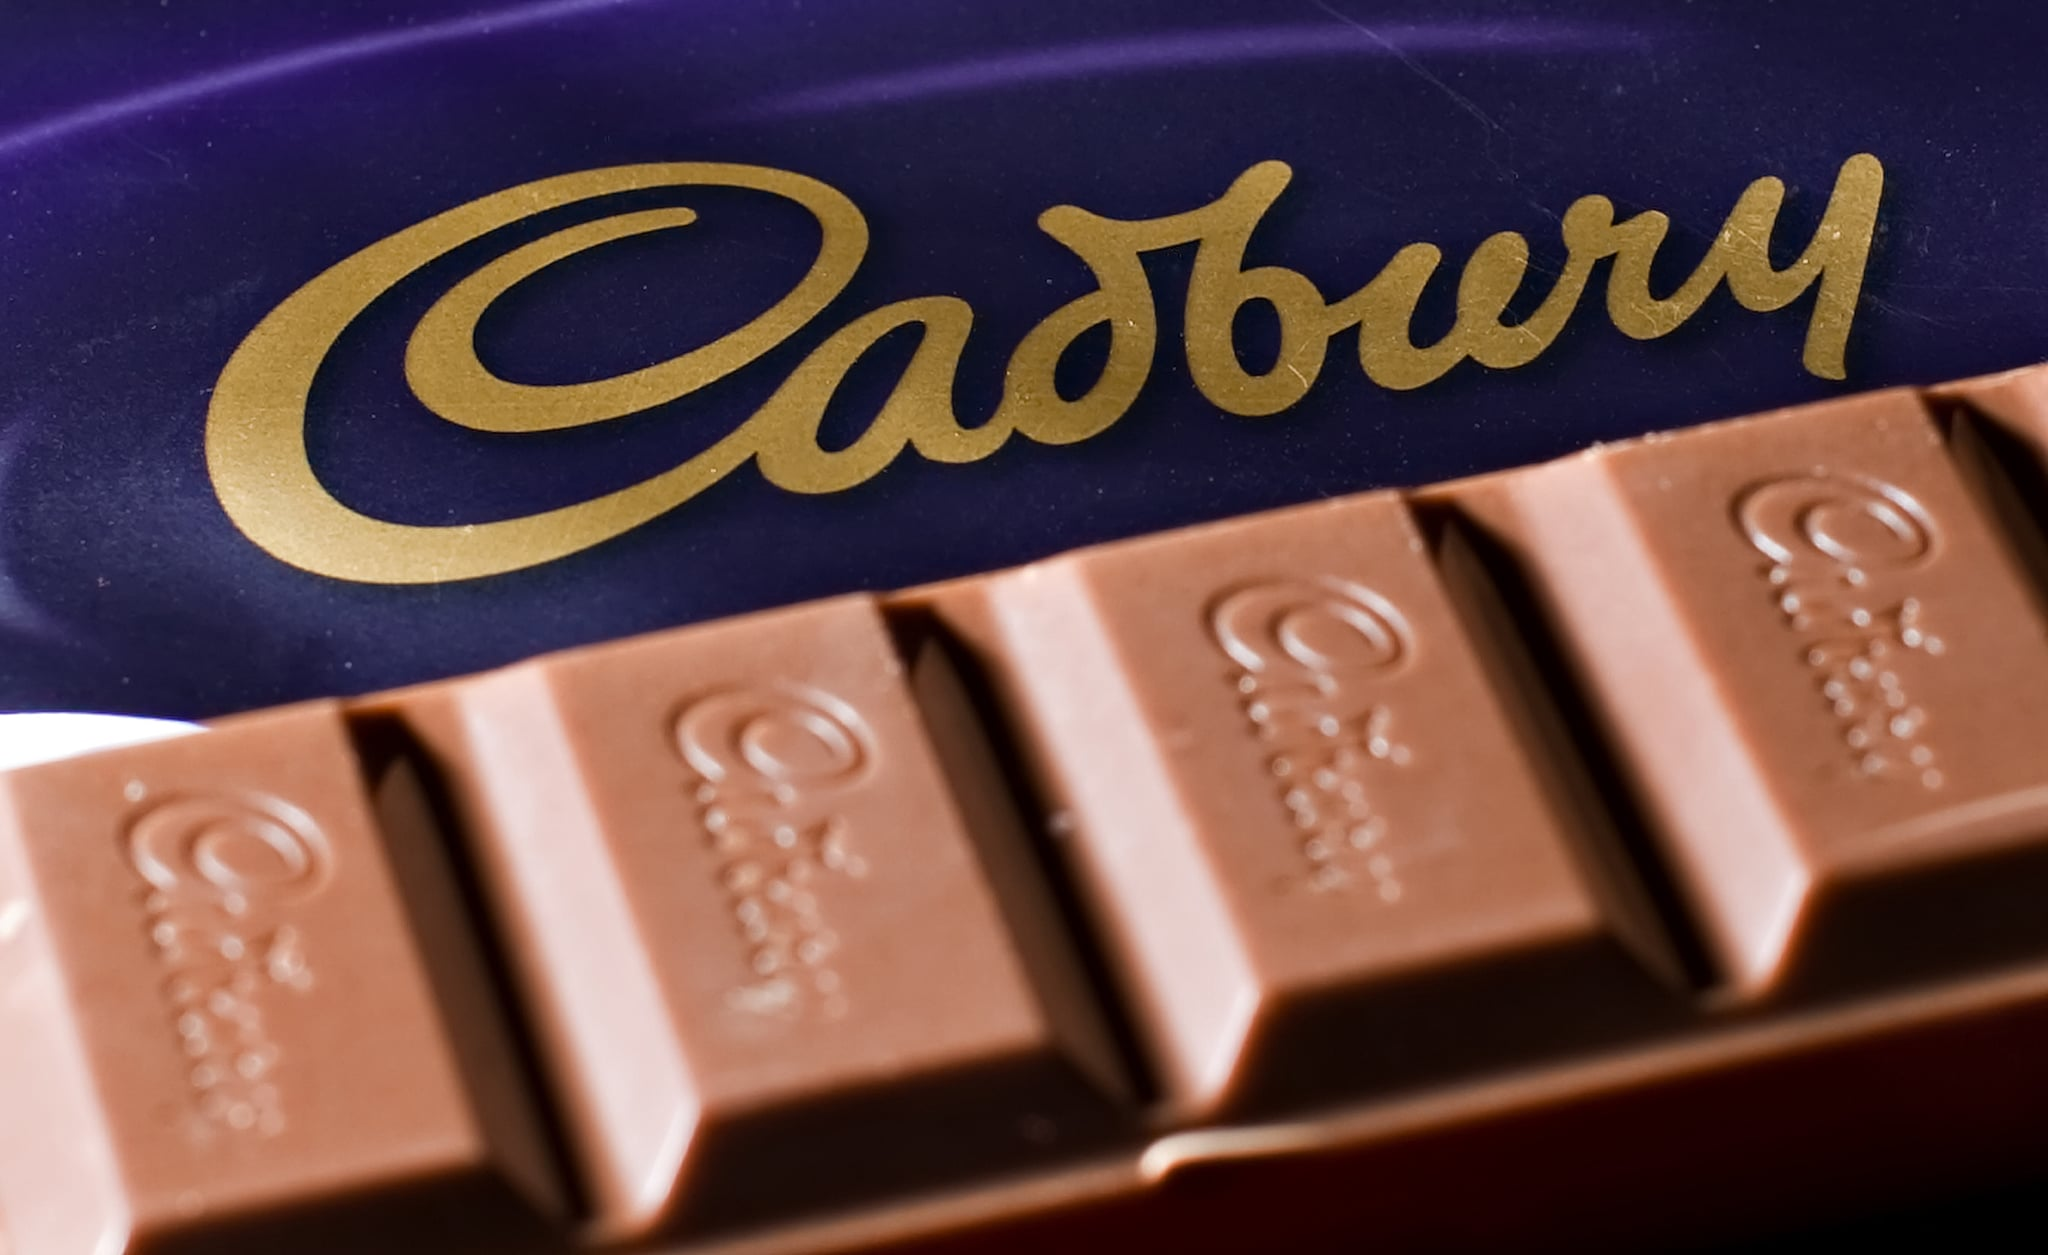 A bar of Cadbury's Dairy Milk chocolate is pictured in London, on January 14, 2010.  US chocolate maker Hershey has authorised a bid to be prepared for British confectioner Cadbury to counter American giant Kraft's 10.5-billion-pound hostile offer, a newspaper reported Thursday. Citing people familiar with the matter, the Financial Times said Hershey had given the go-ahead for a bid to be drawn up and a formal offer could be made by a January 23 deadline. AFP PHOTO/Leon Neal (Photo credit should read LEON NEAL/AFP via Getty Images)